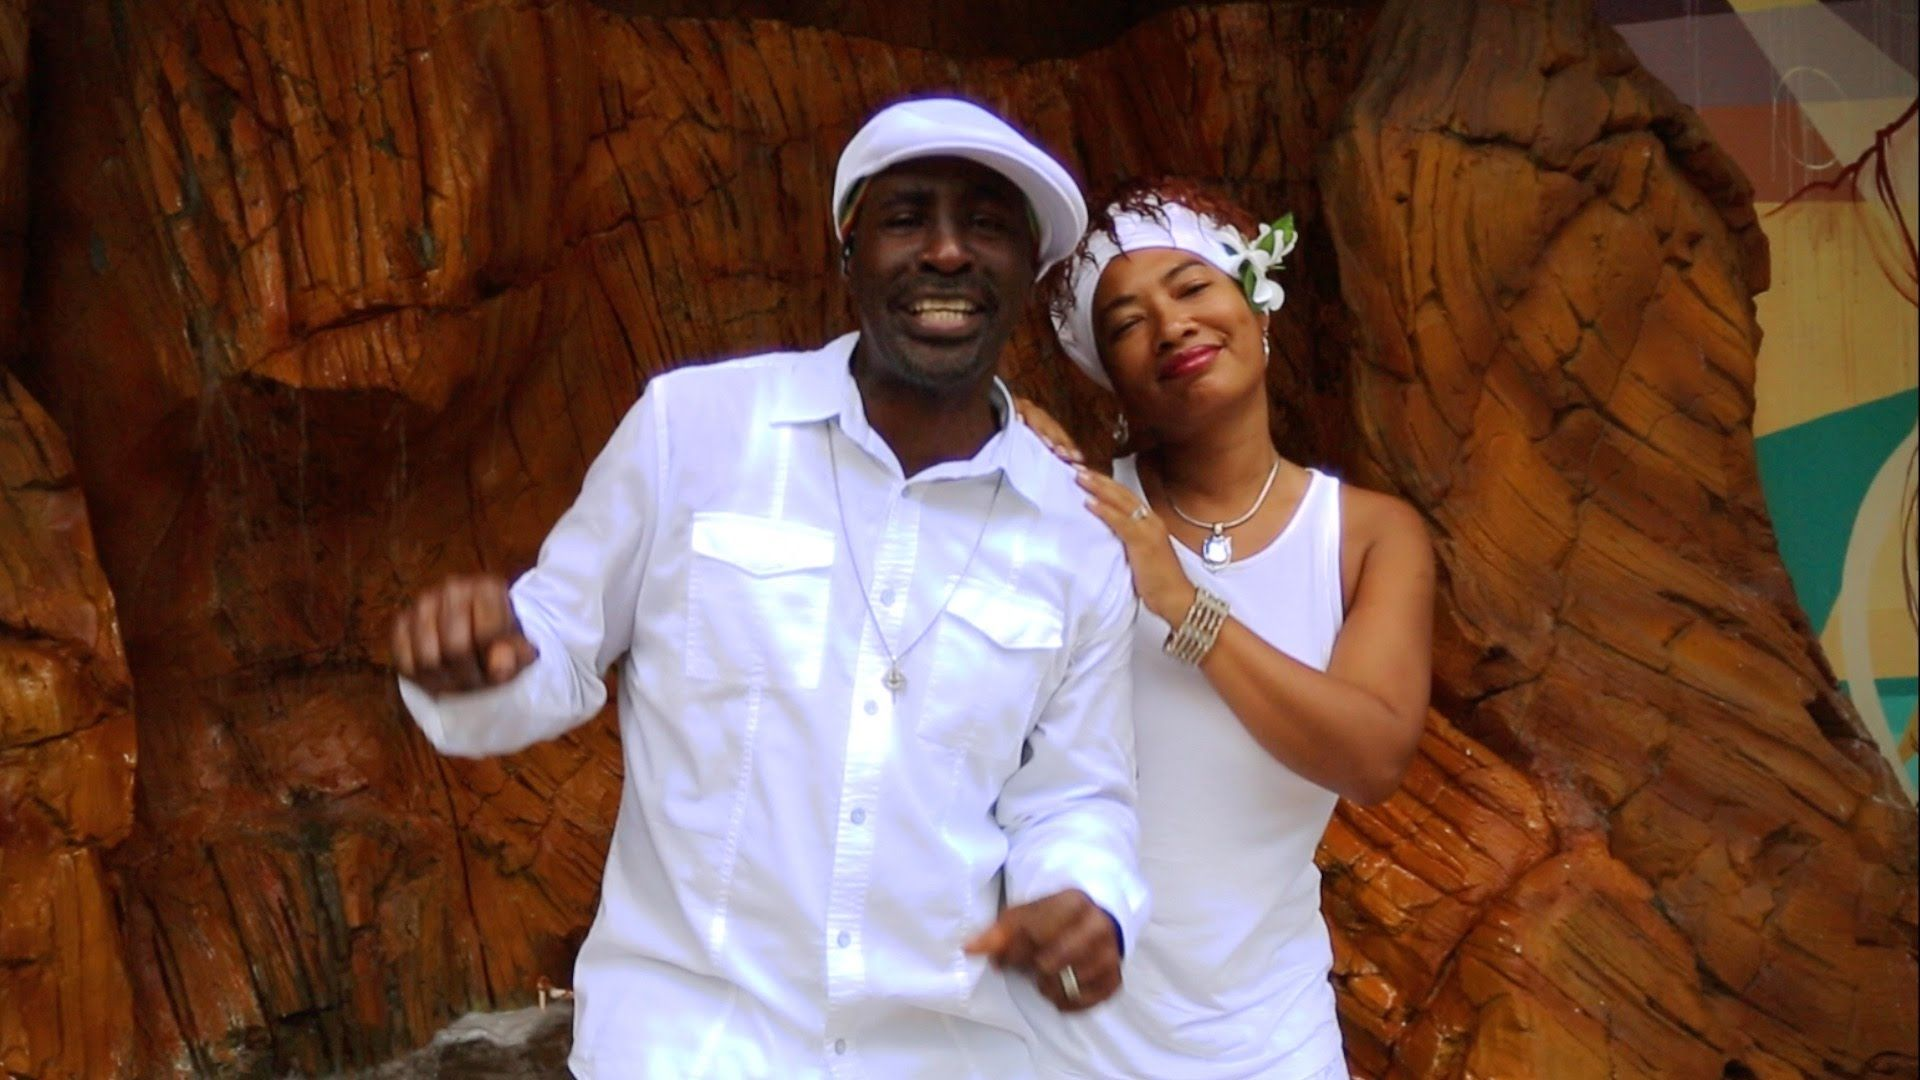 PATO BANTON Together As One (Our Wedding Song) (With